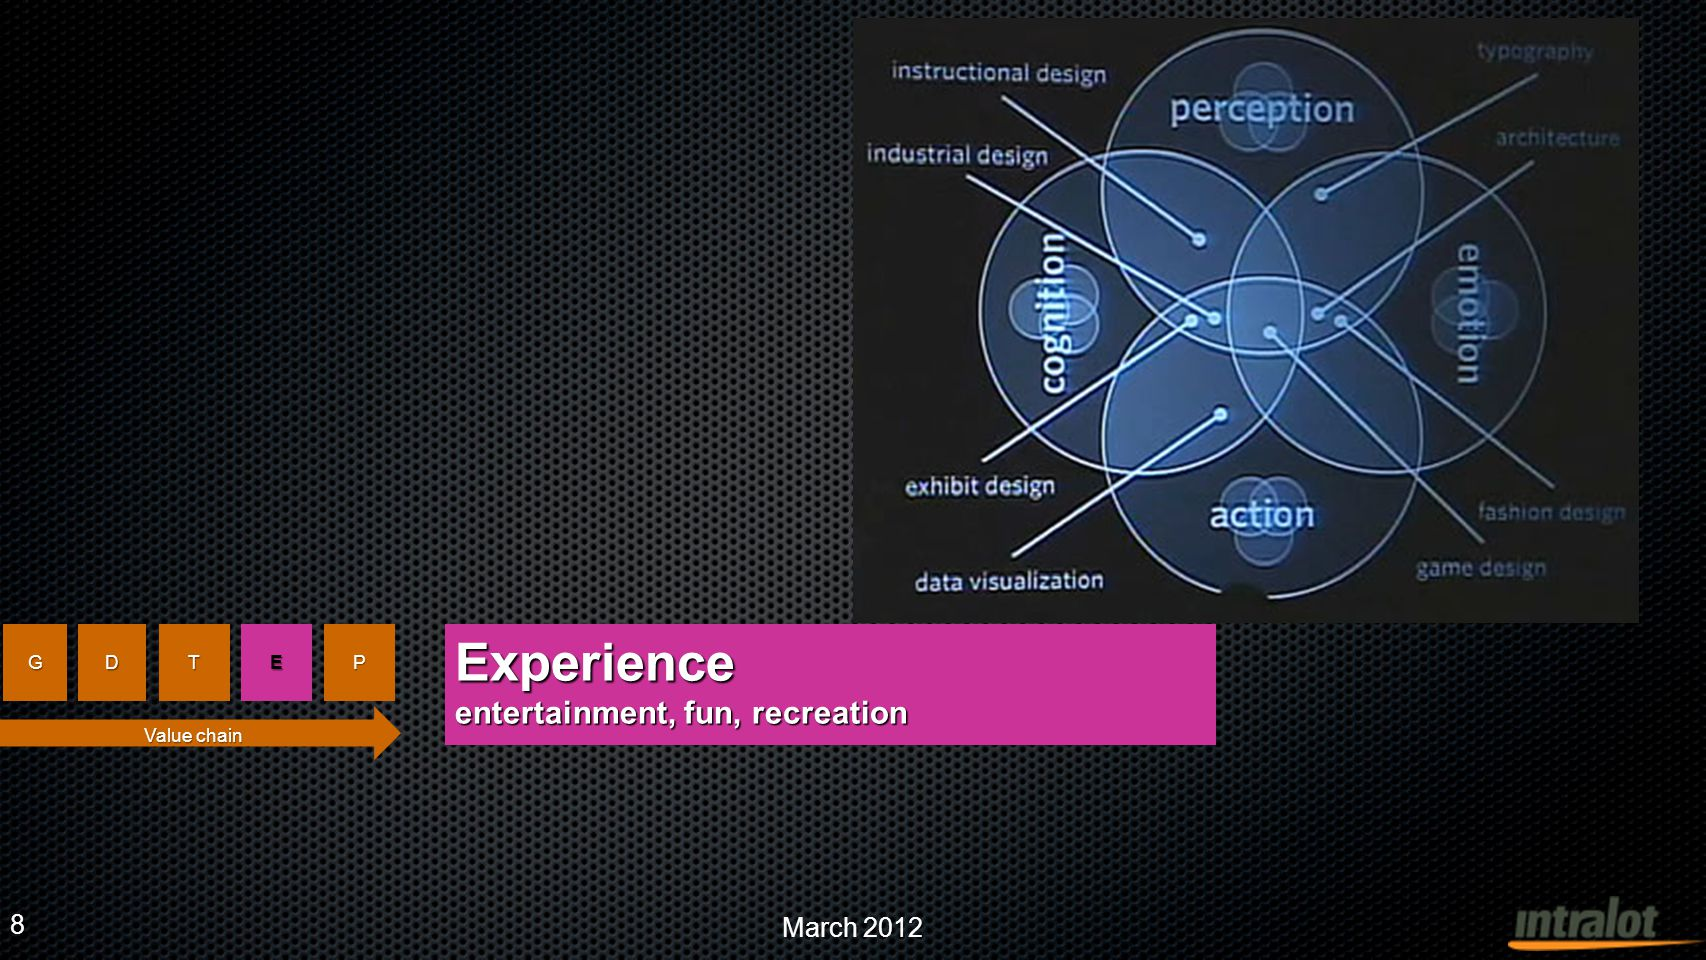 March 2012 Experience entertainment, fun, recreation GDTEP Value chain 8